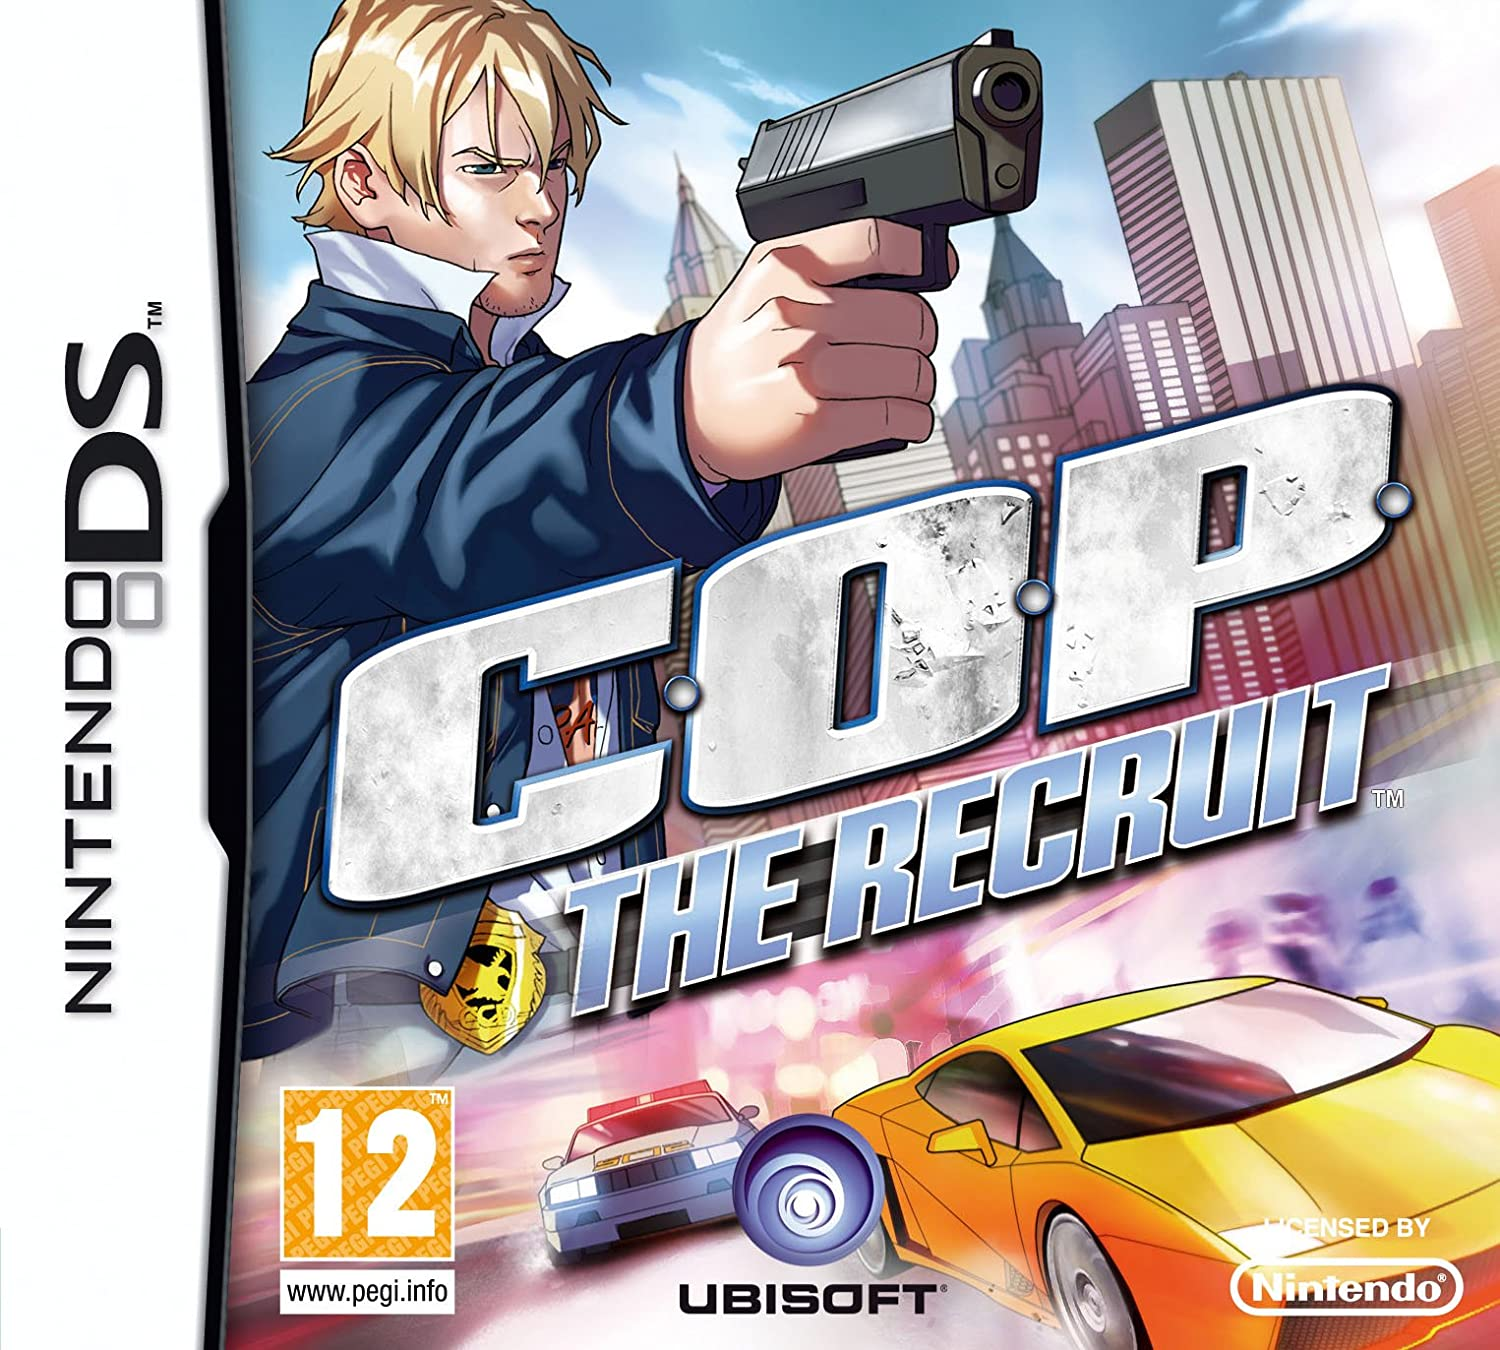 Ubisoft C.O.P. The Recruit - Juego (No específicado): Amazon.es: Videojuegos